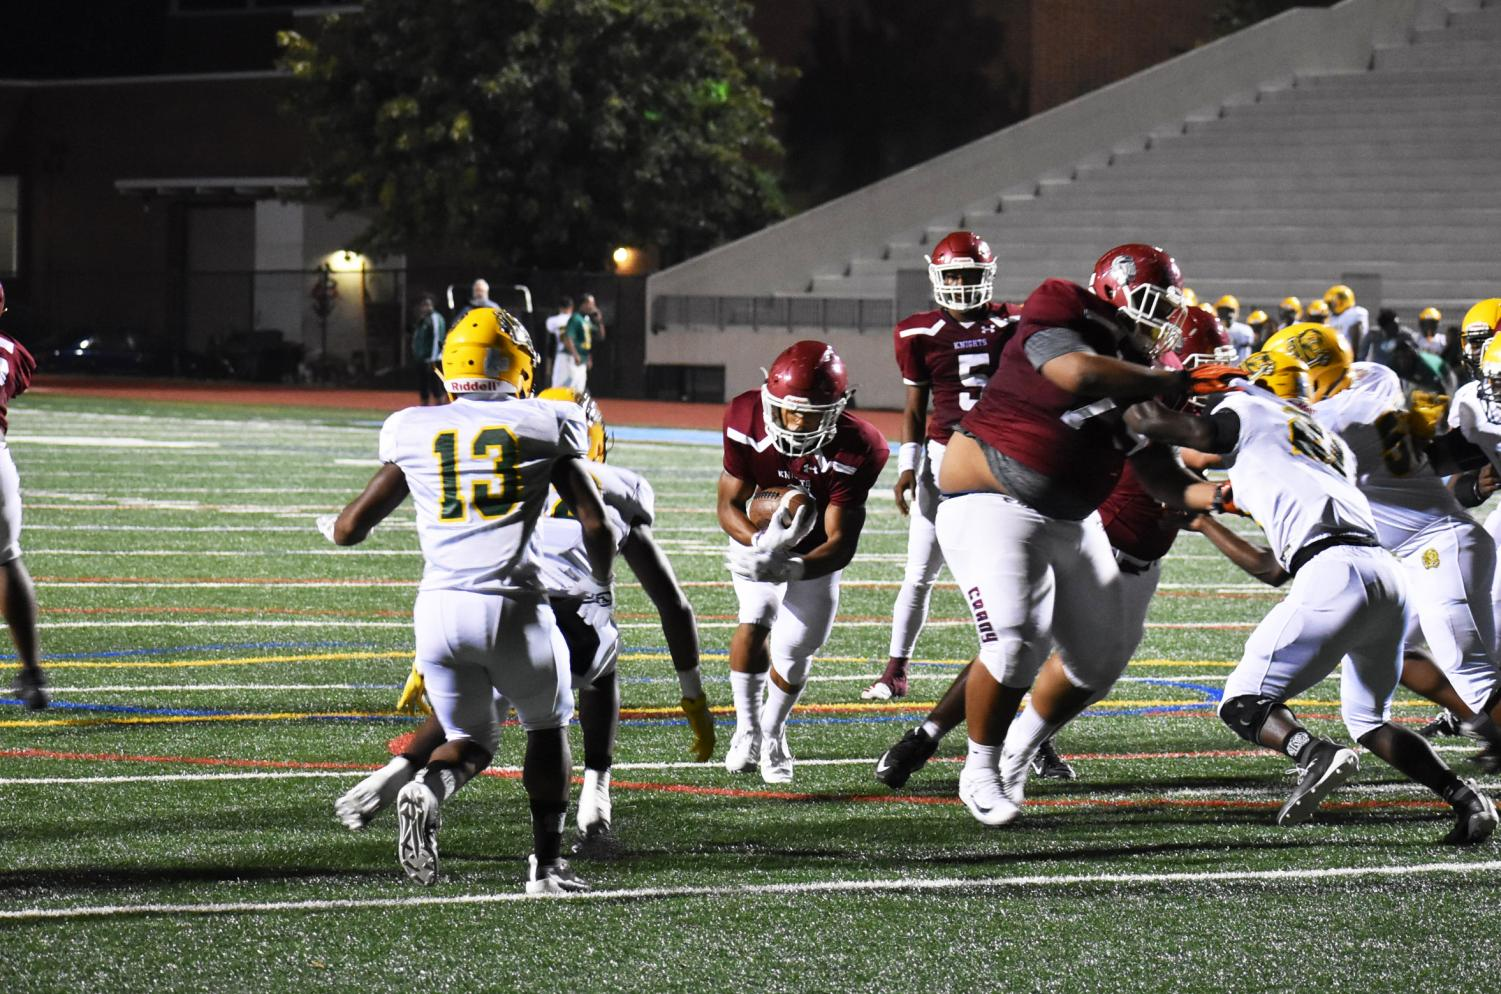 Senior Canaan Brant finds the gap in the offensive line to score a touchdown in the second quarter of the game against Lithia Springs on Sept. 20. The Knights won the game in overtime 45-42.